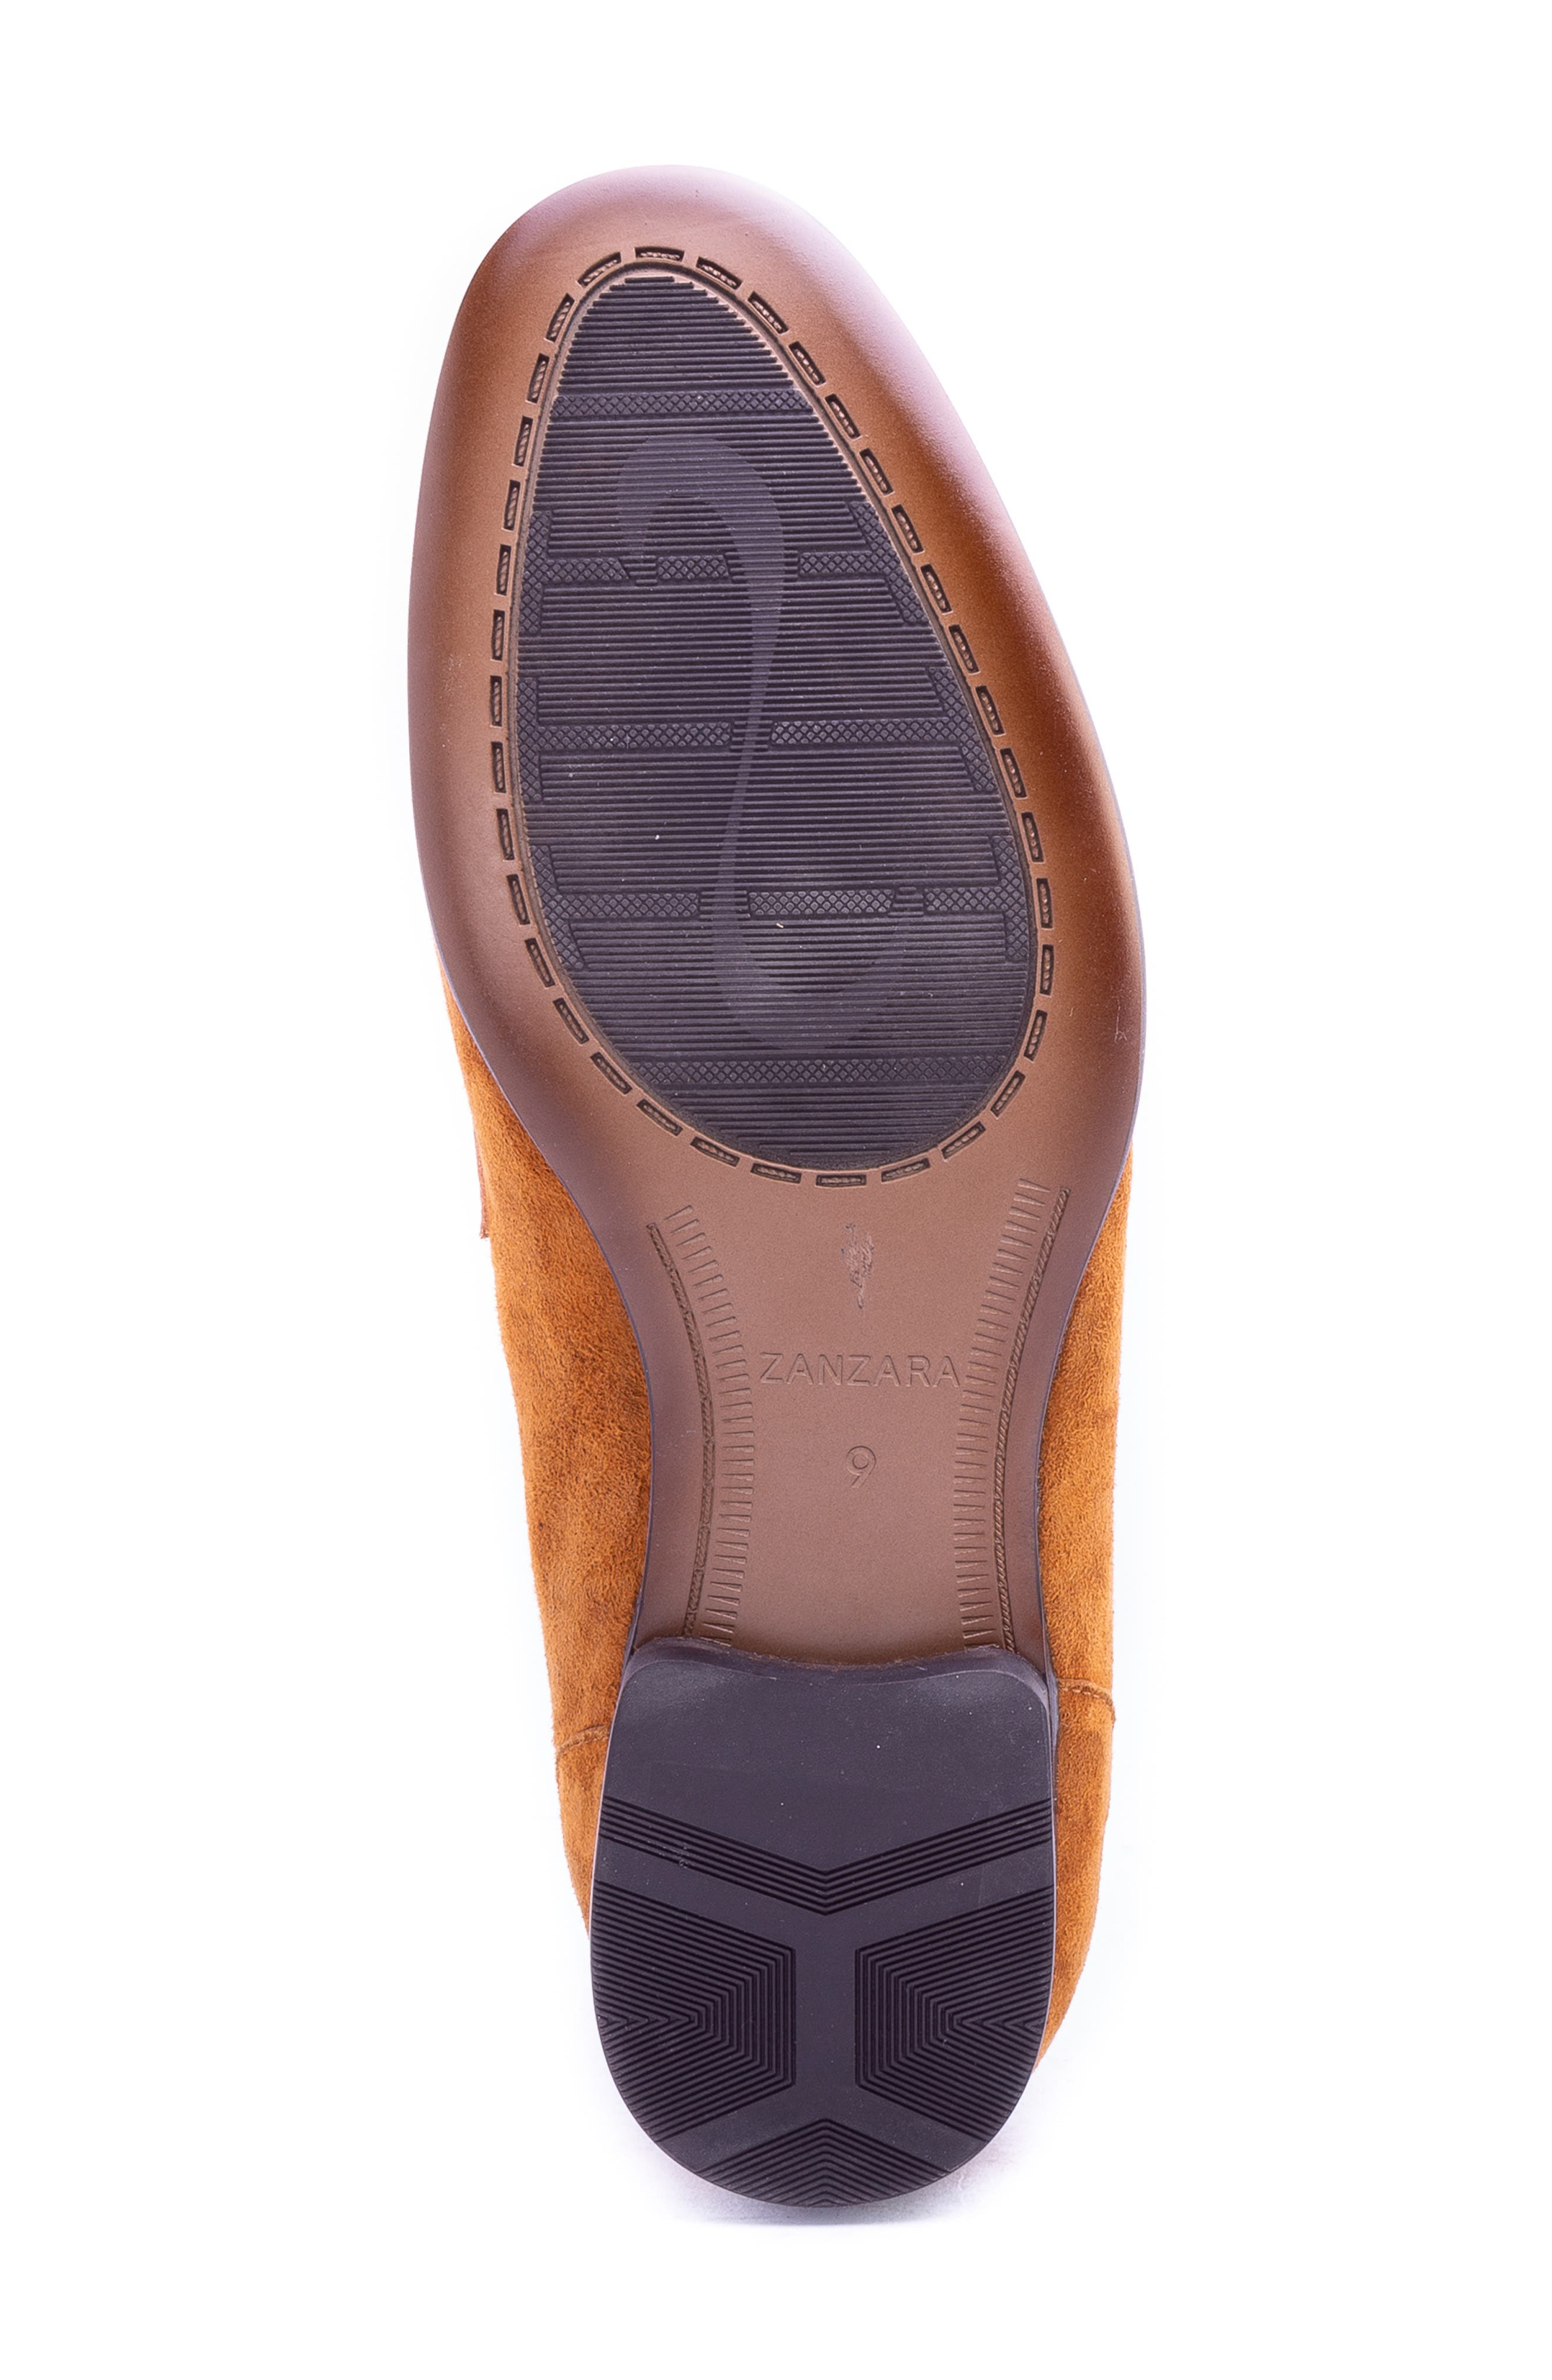 Opie Penny Loafer,                             Alternate thumbnail 6, color,                             COGNAC SUEDE/ LEATHER